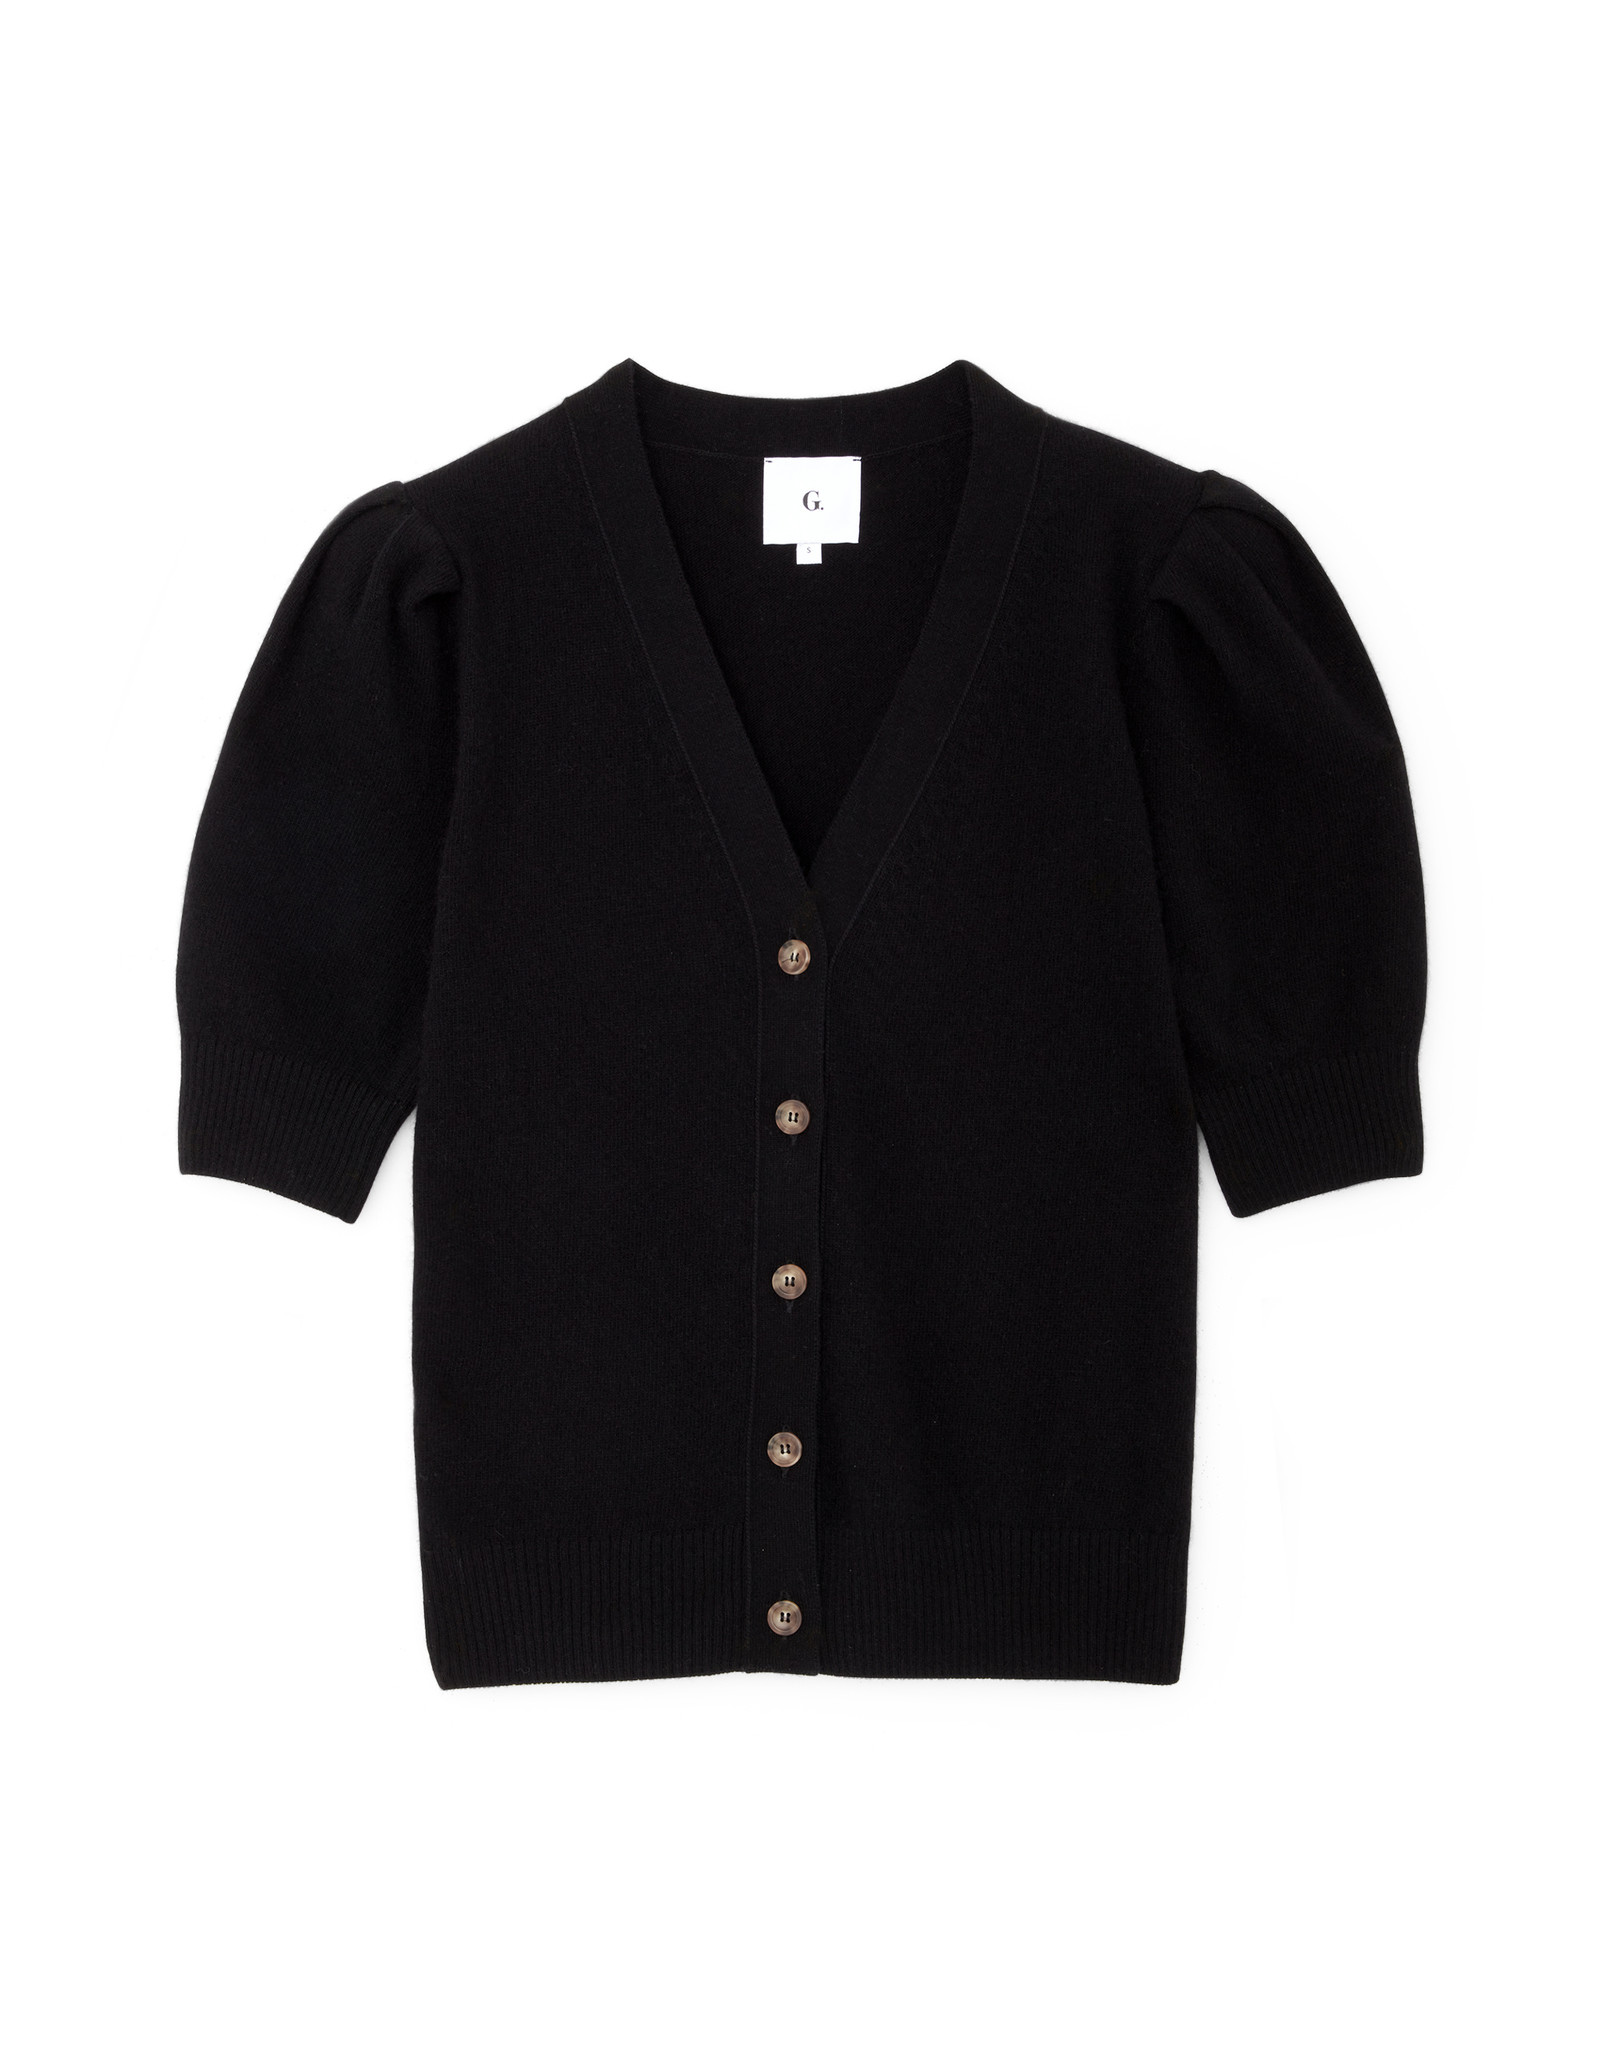 G. Label G. Label Juliette Short Sleeve Cardigan (Color: Black, Size: S)